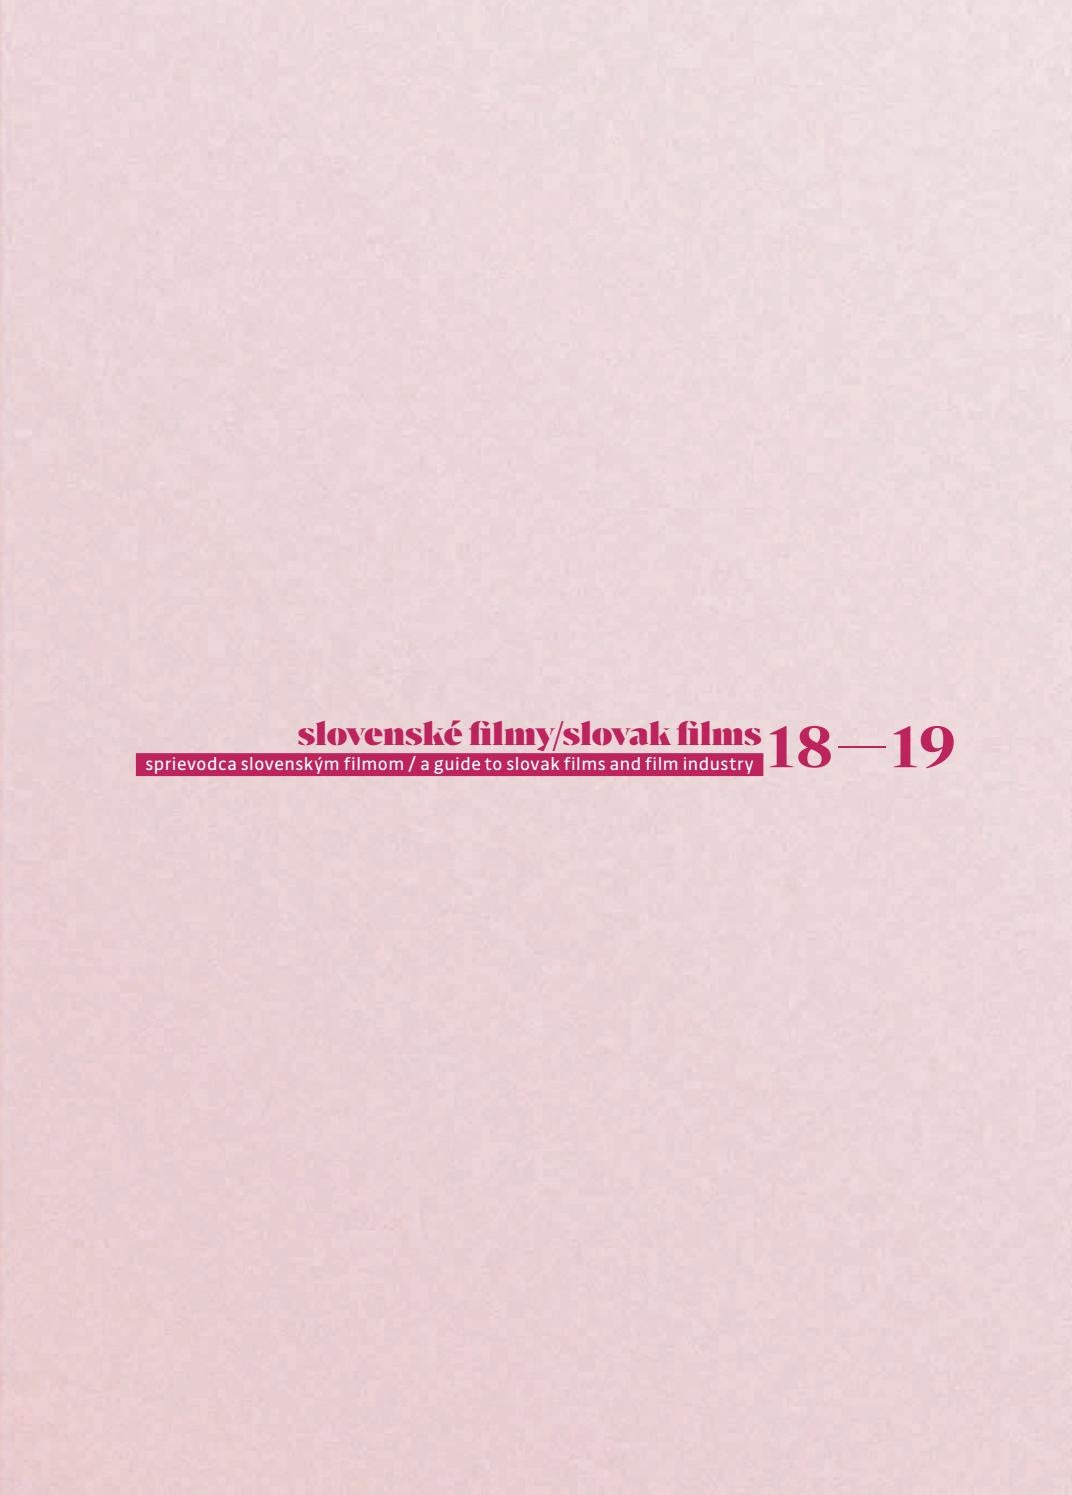 0e392763a Slovak Films 18-19 by Slovak Film Institute - issuu